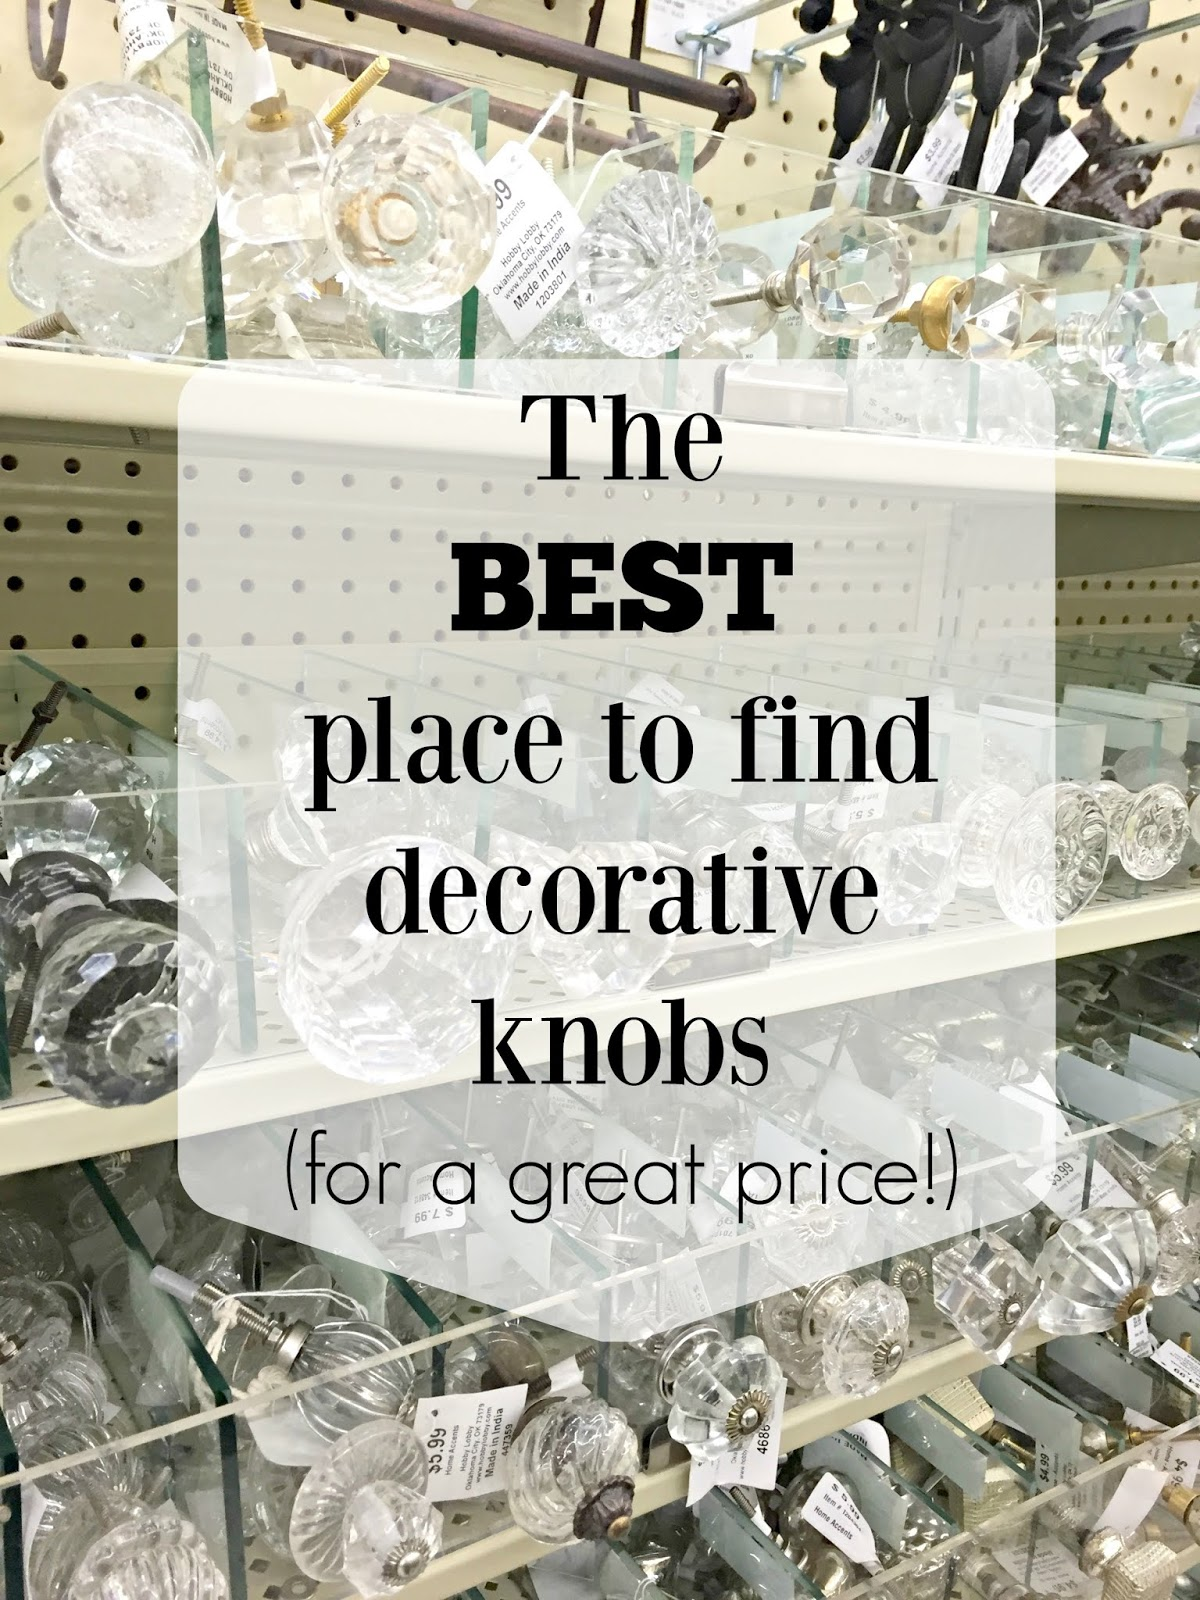 The best place to find decorative knobs and hardware